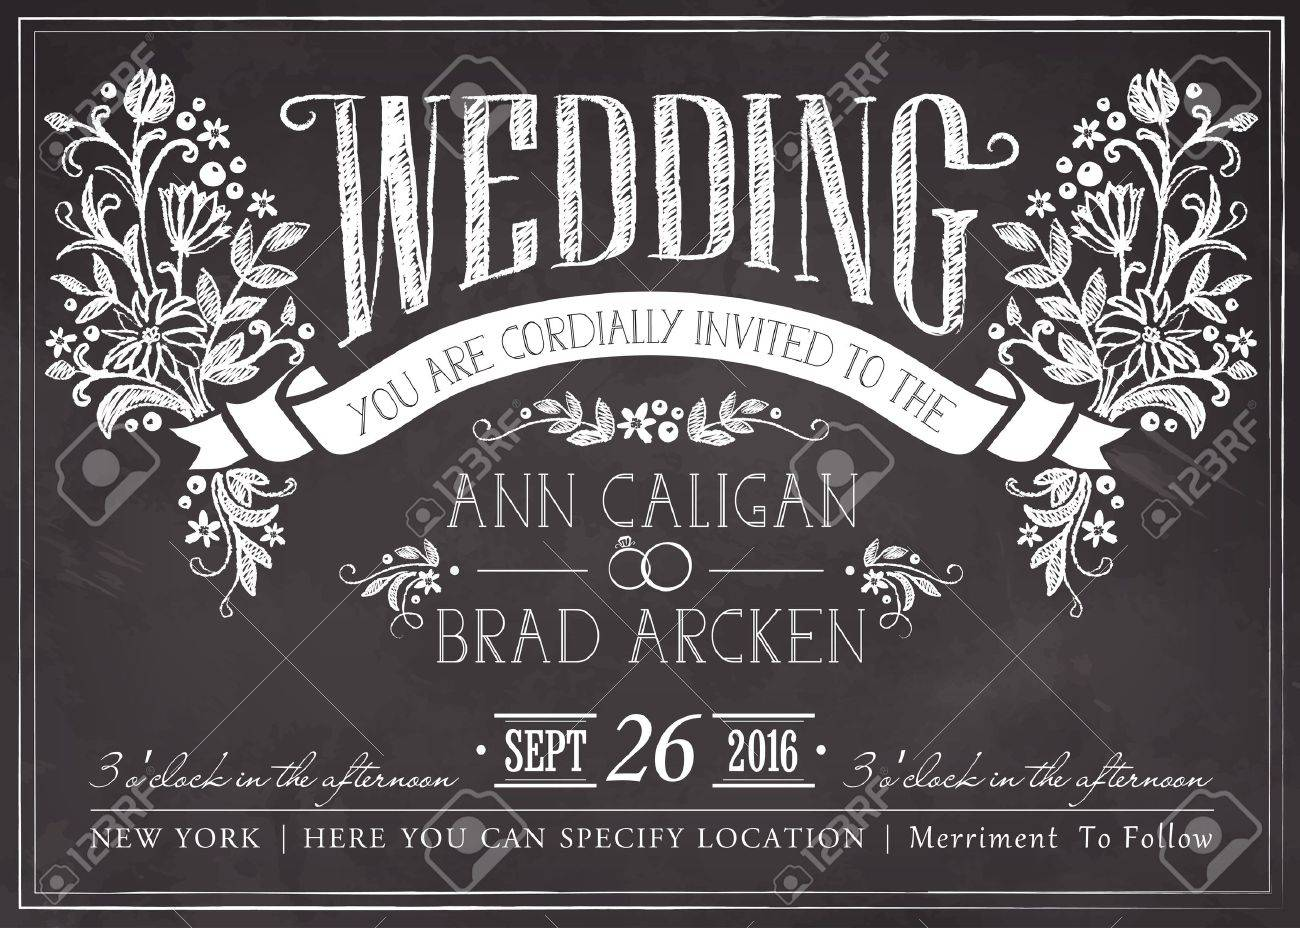 Wedding invitation card with floral background Stock Vector - 45363605